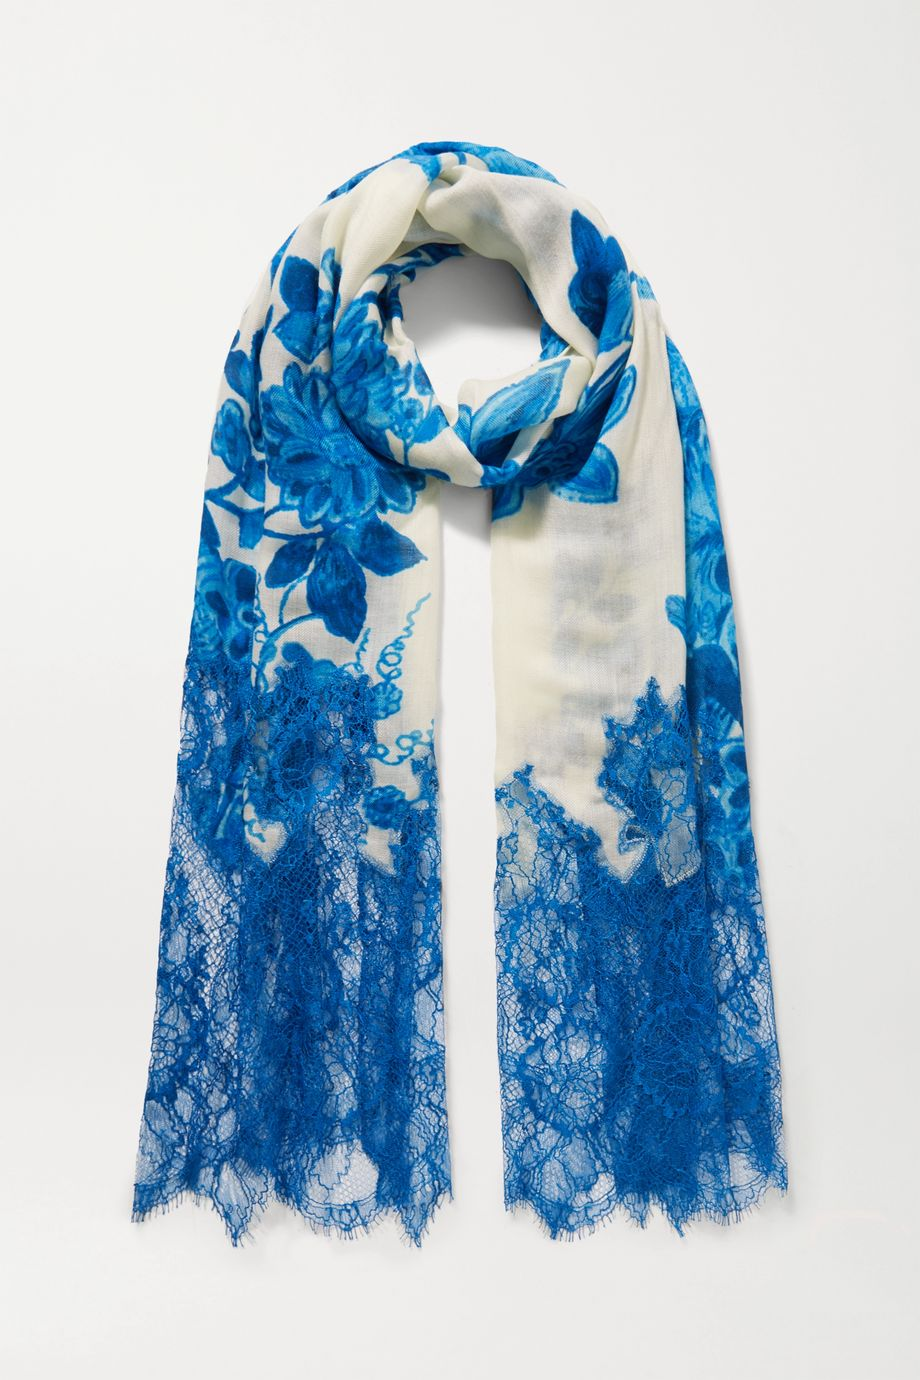 Valentino Valentino Garavani lace-paneled floral-print cashmere and wool-blend scarf